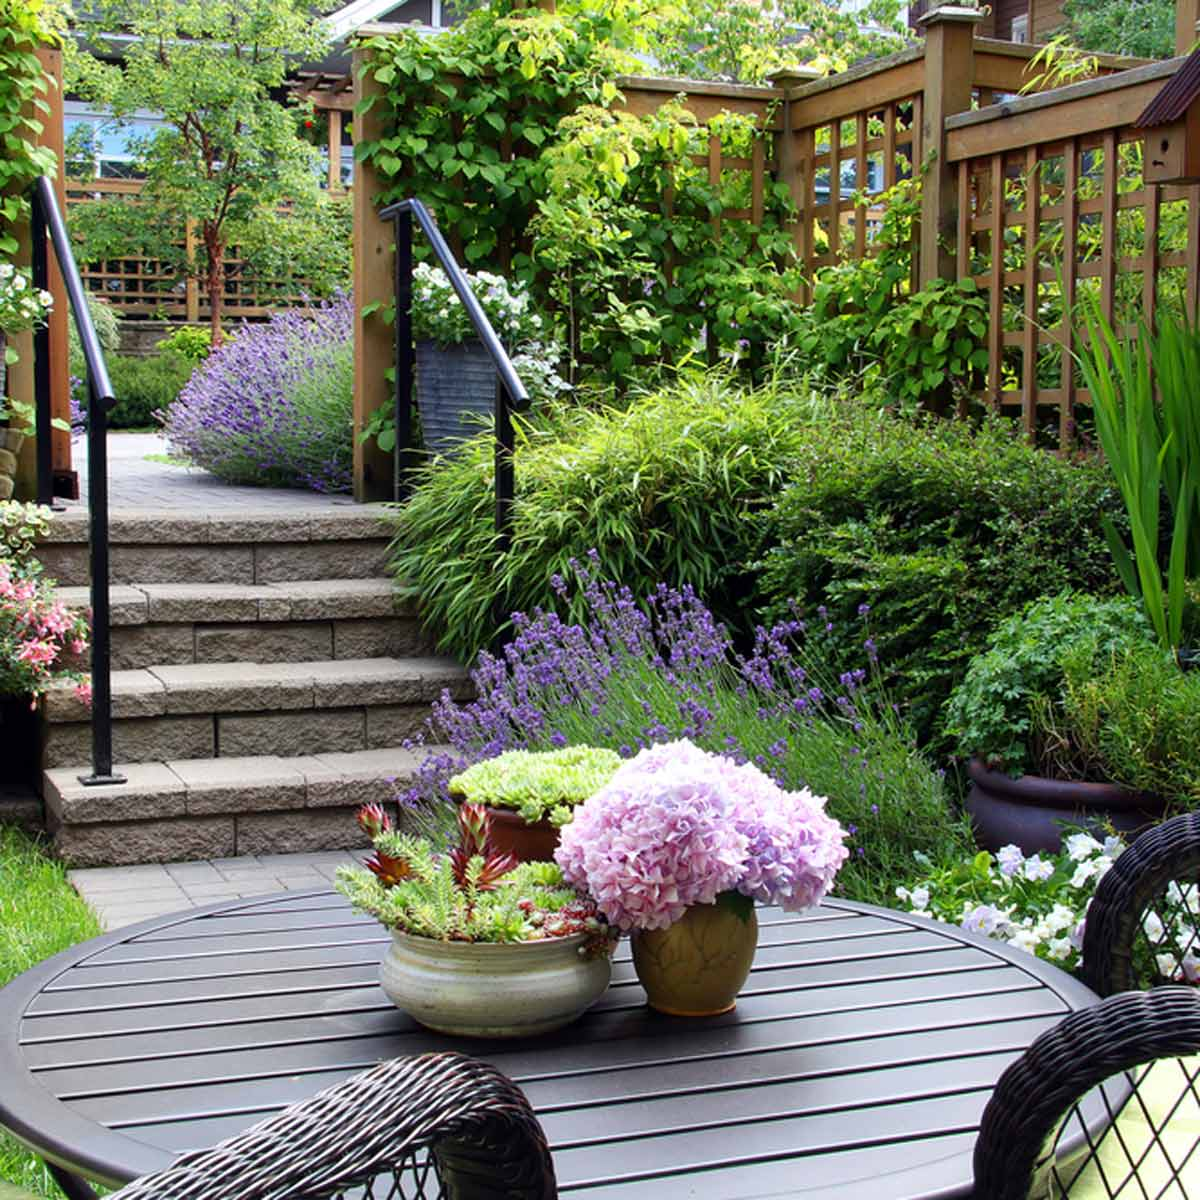 Landscaping in Small Places, Dazzling Landscaping in Small Places, Landscape Pros | Landscape Design & Landscaping Services Manassas, VA